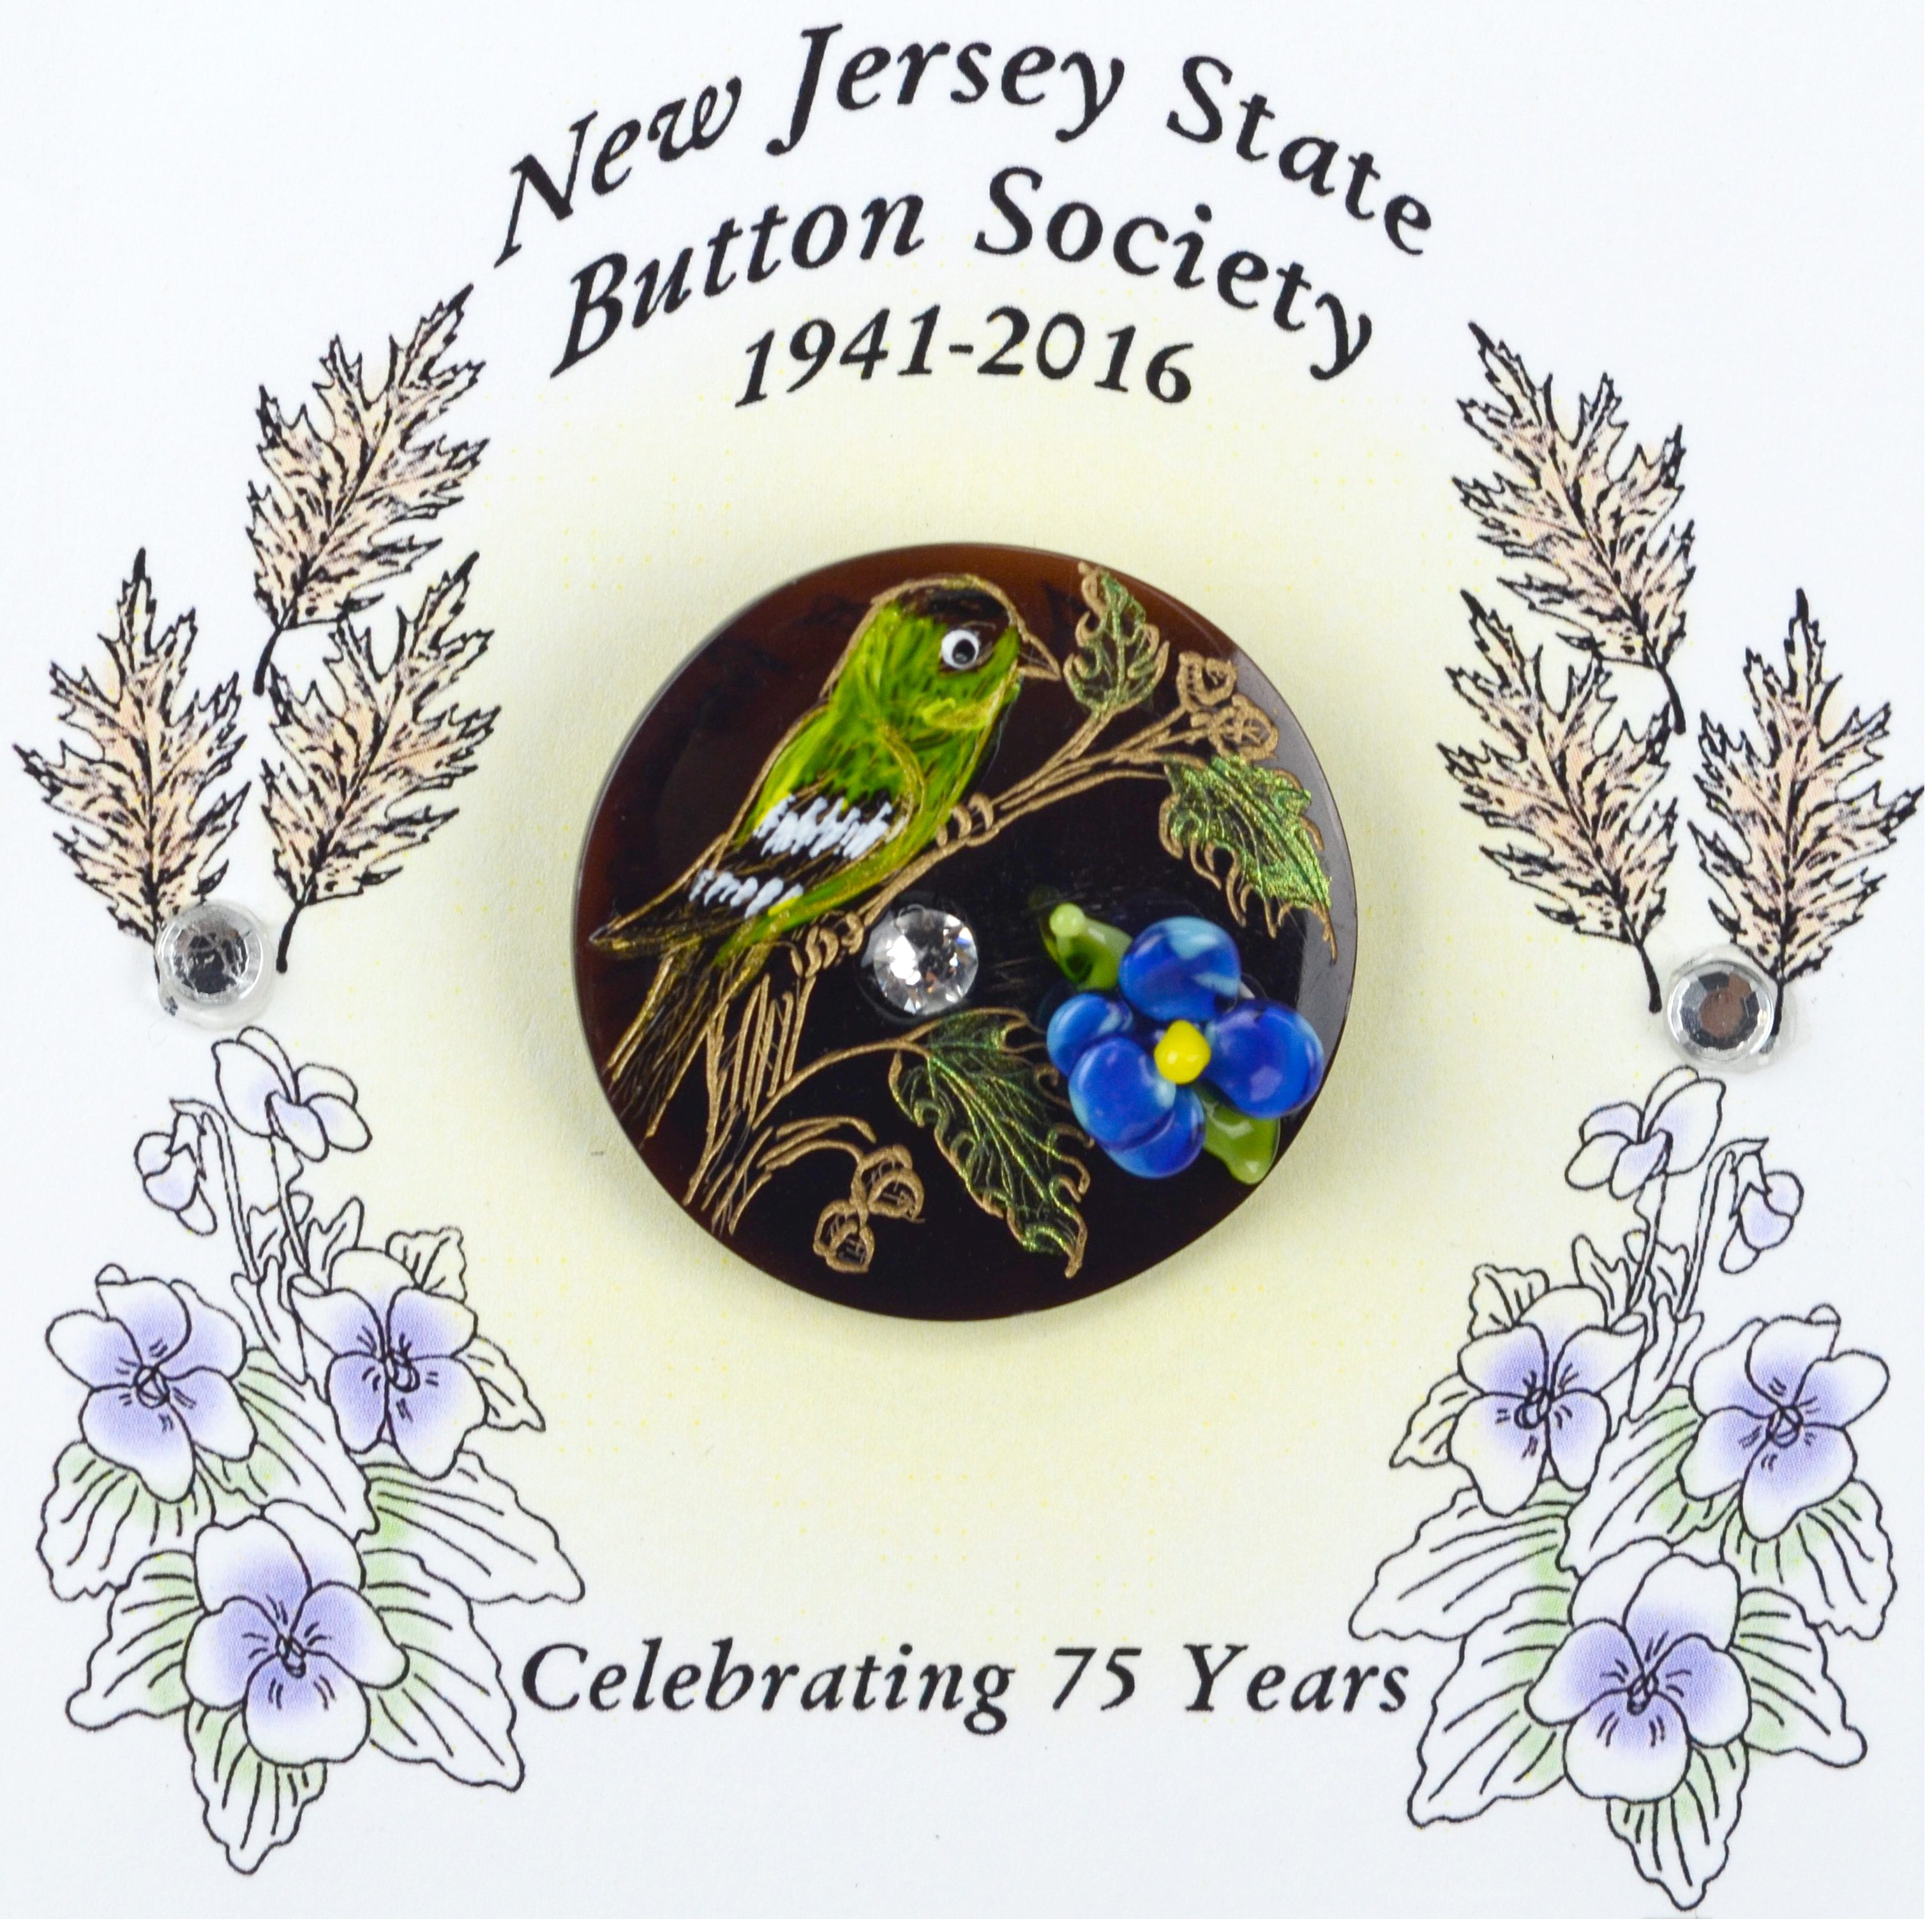 New Jersey State Button Society